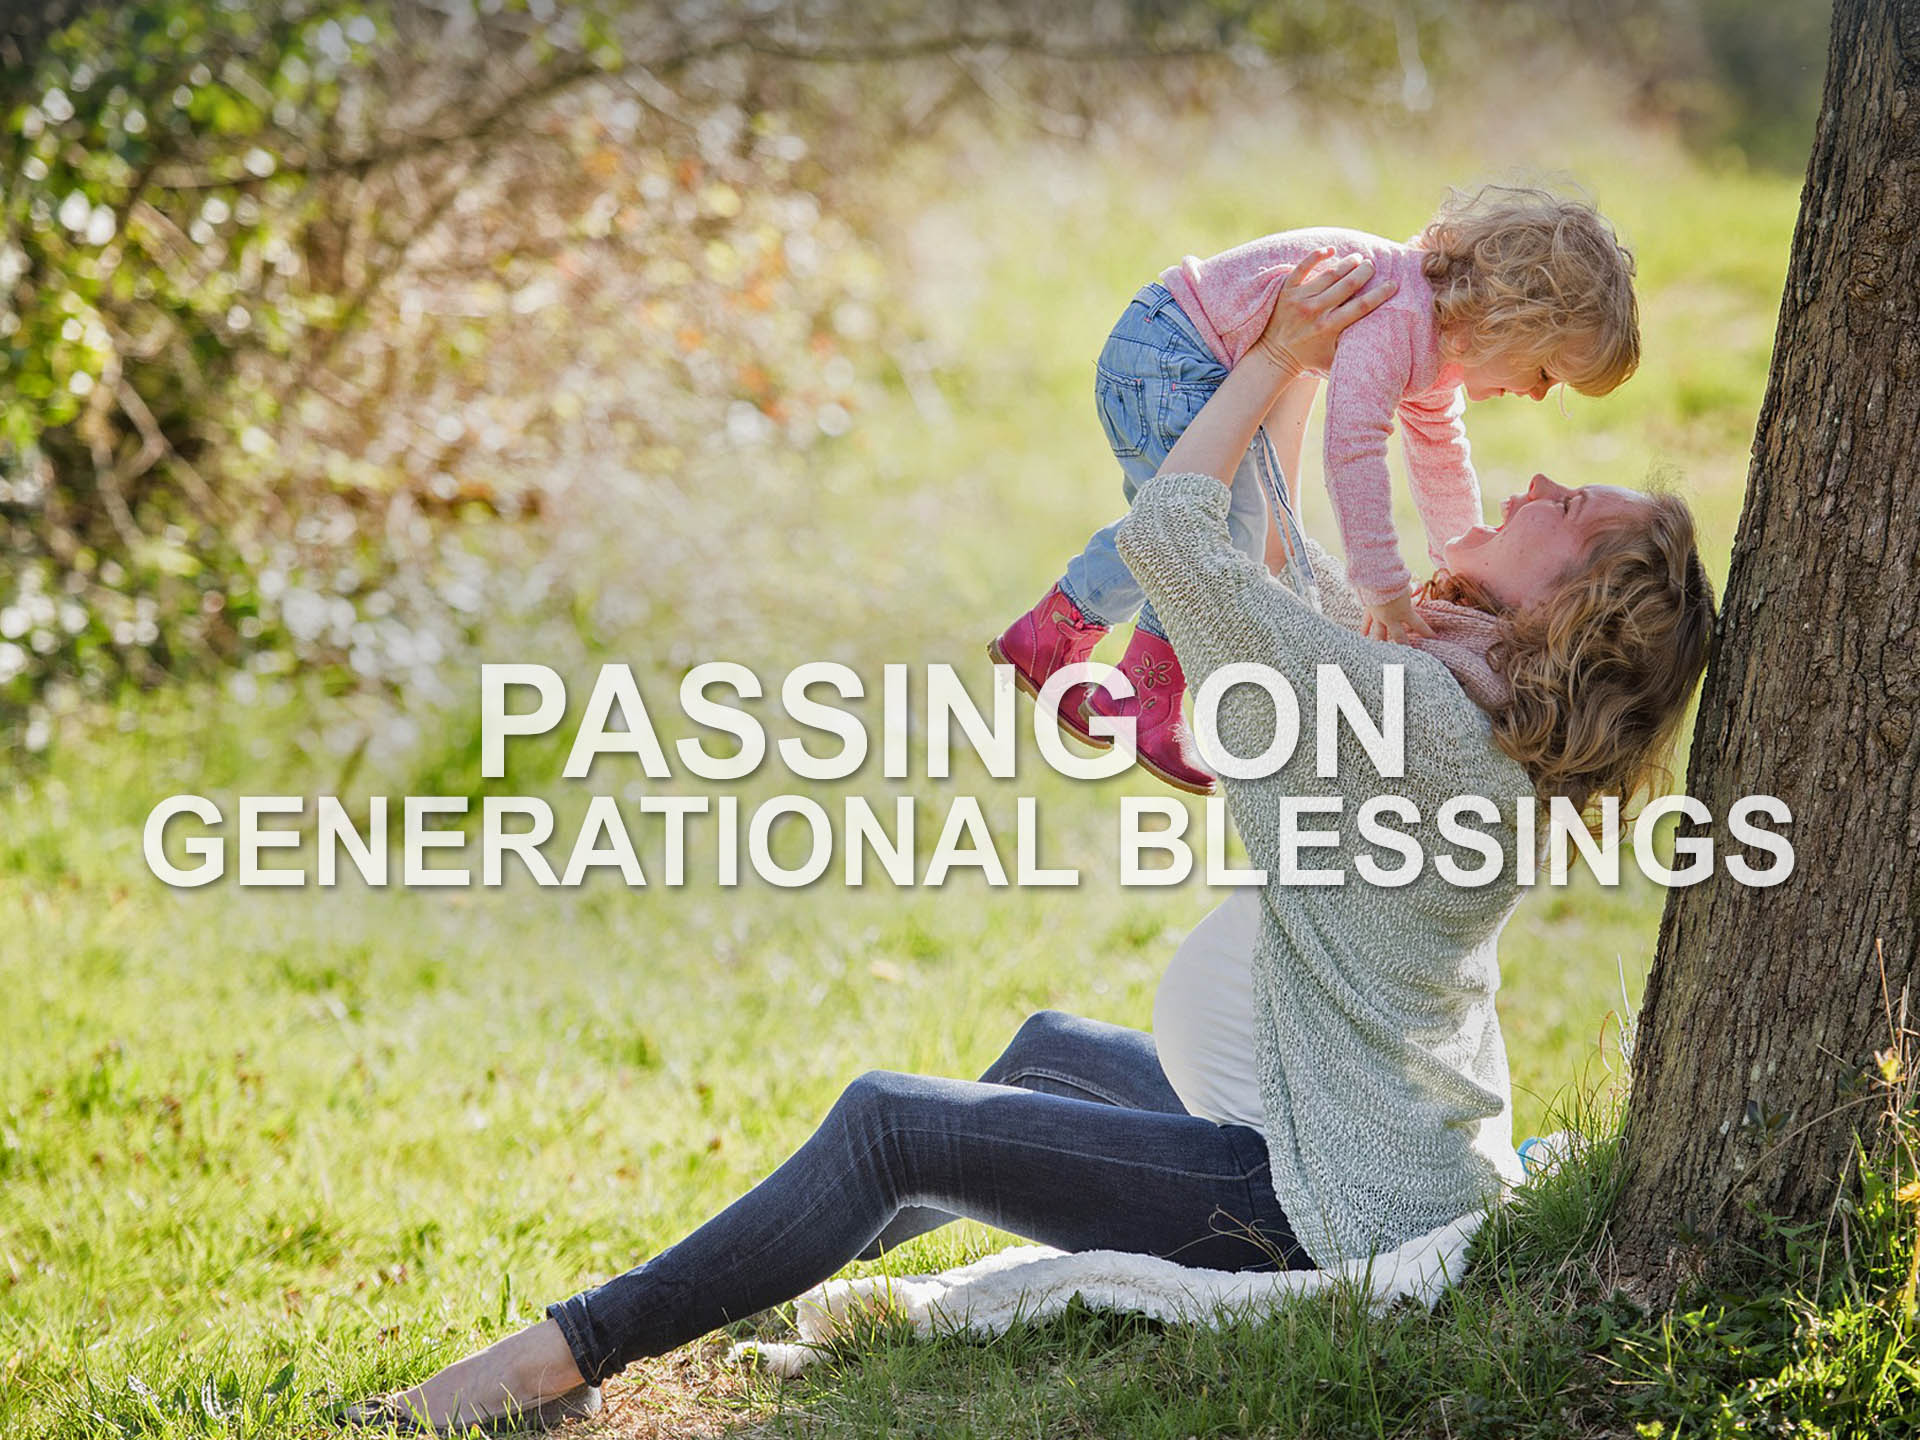 Passing on Generational Blessings